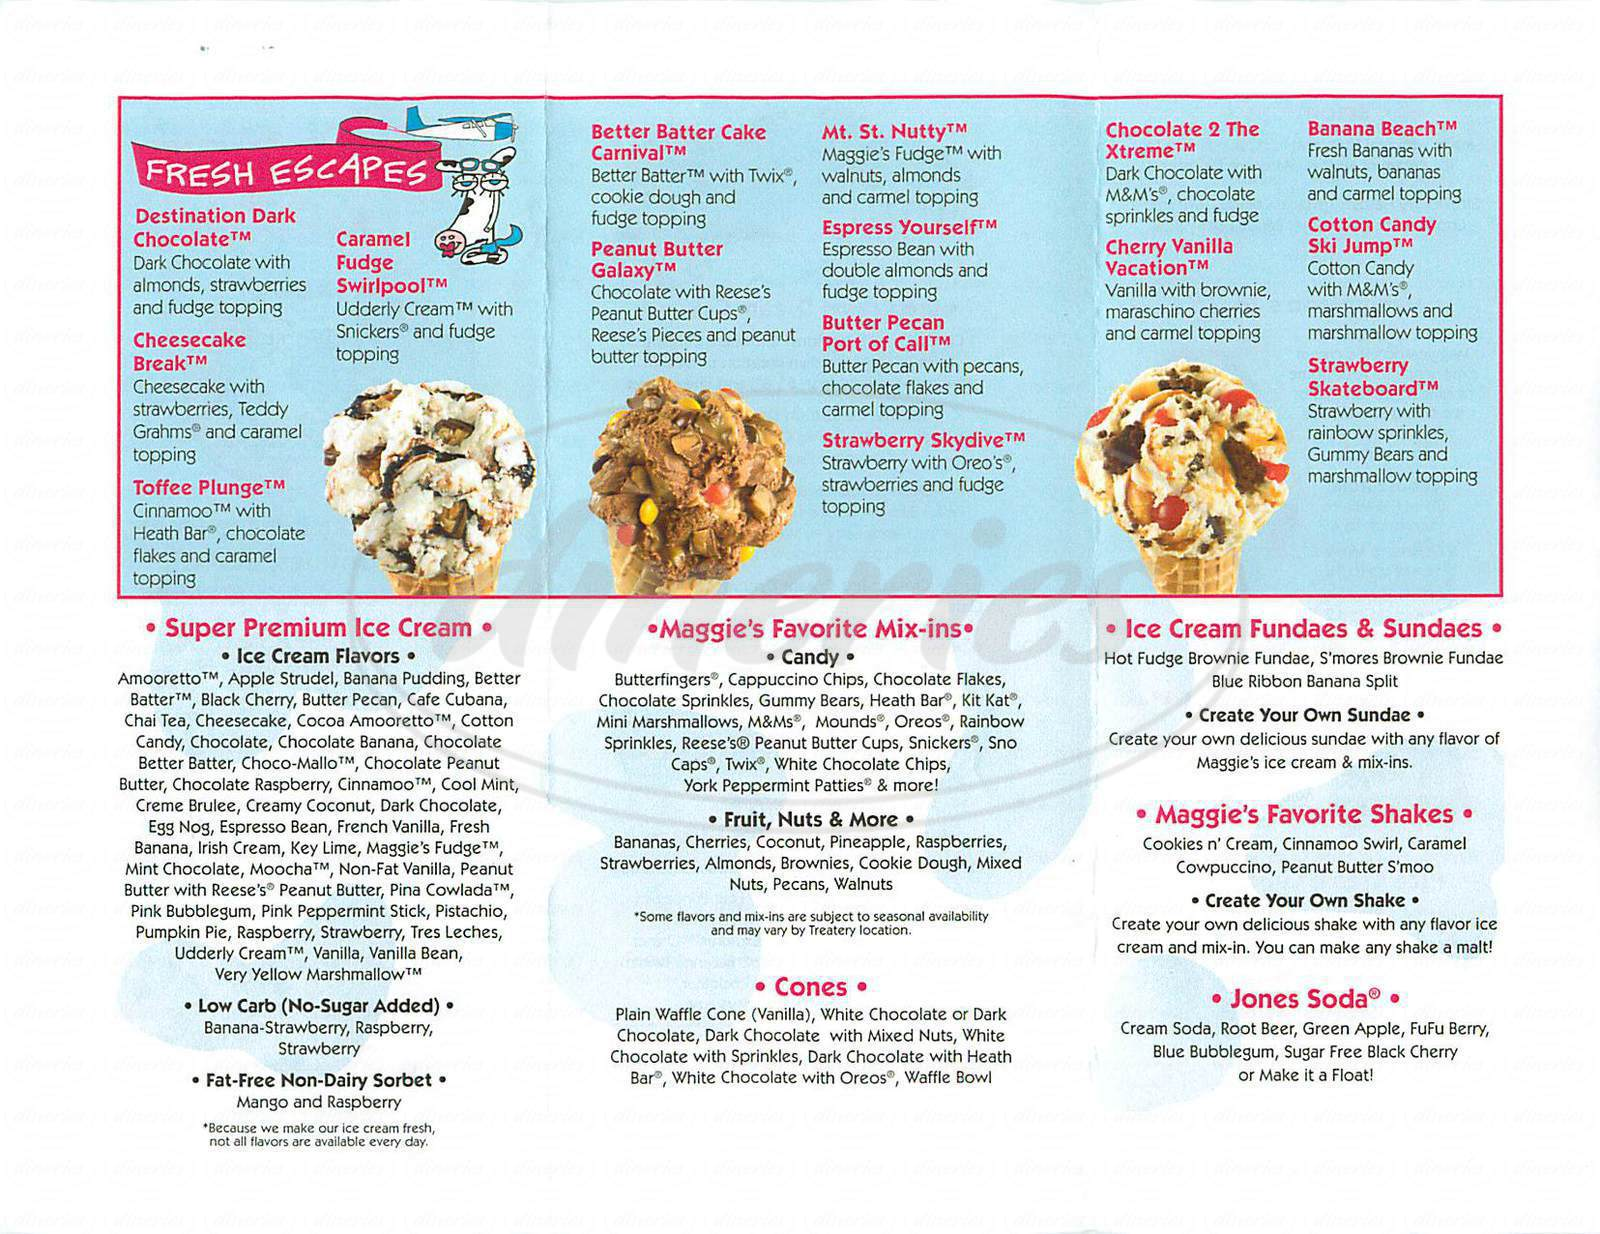 menu for Maggie Moo's Ice Cream & Treatery